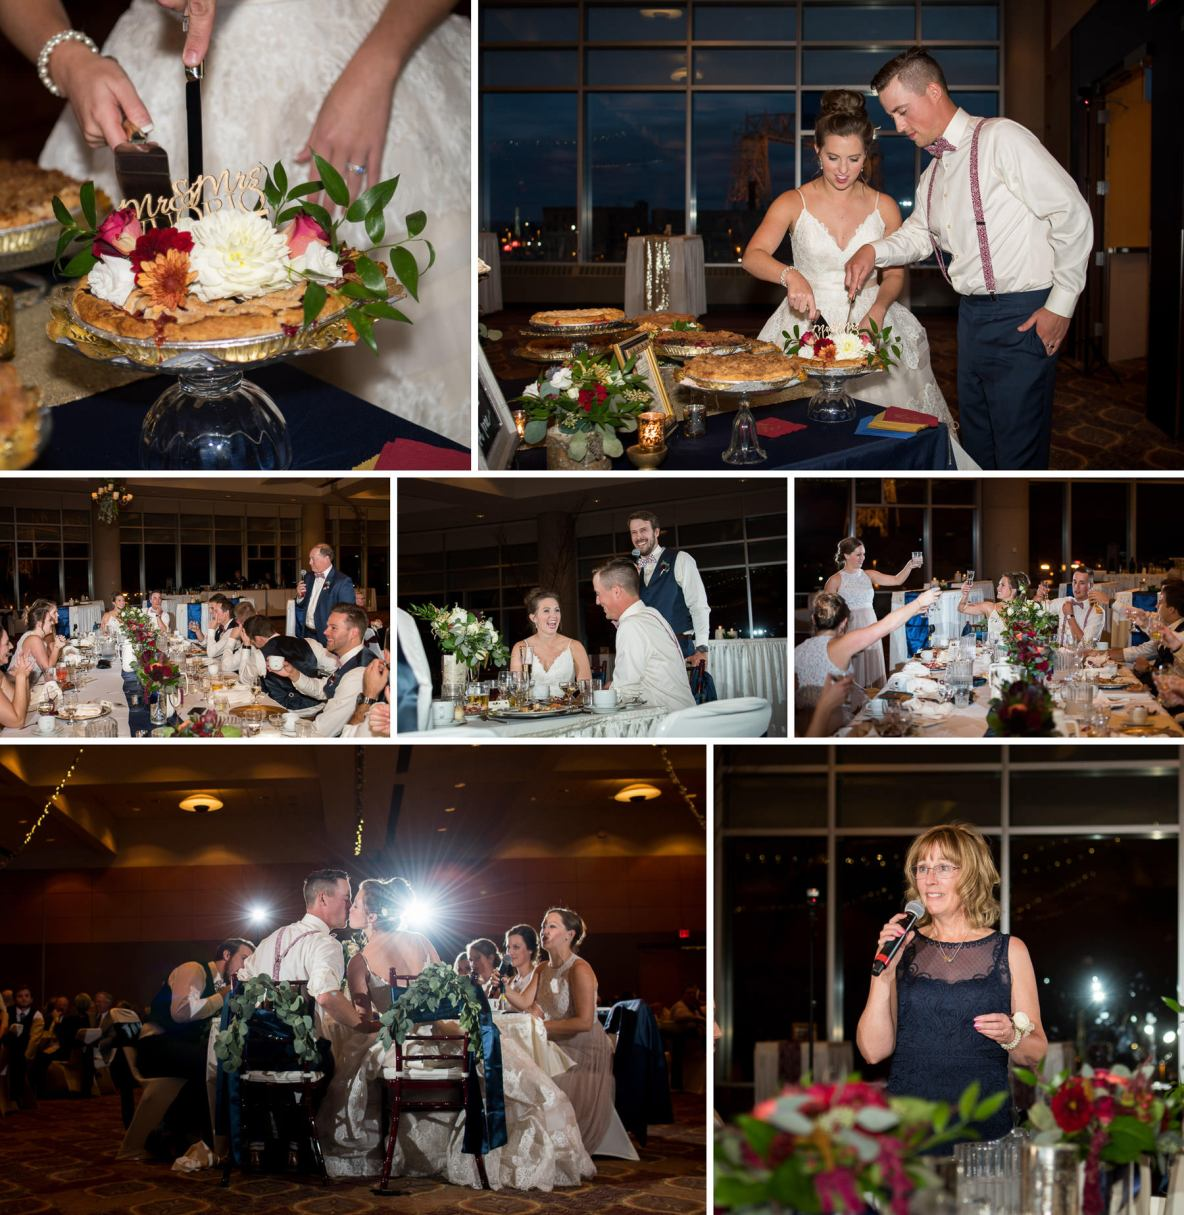 Bride and groom cut the cake at the wedding reception; speeches and kissing included.